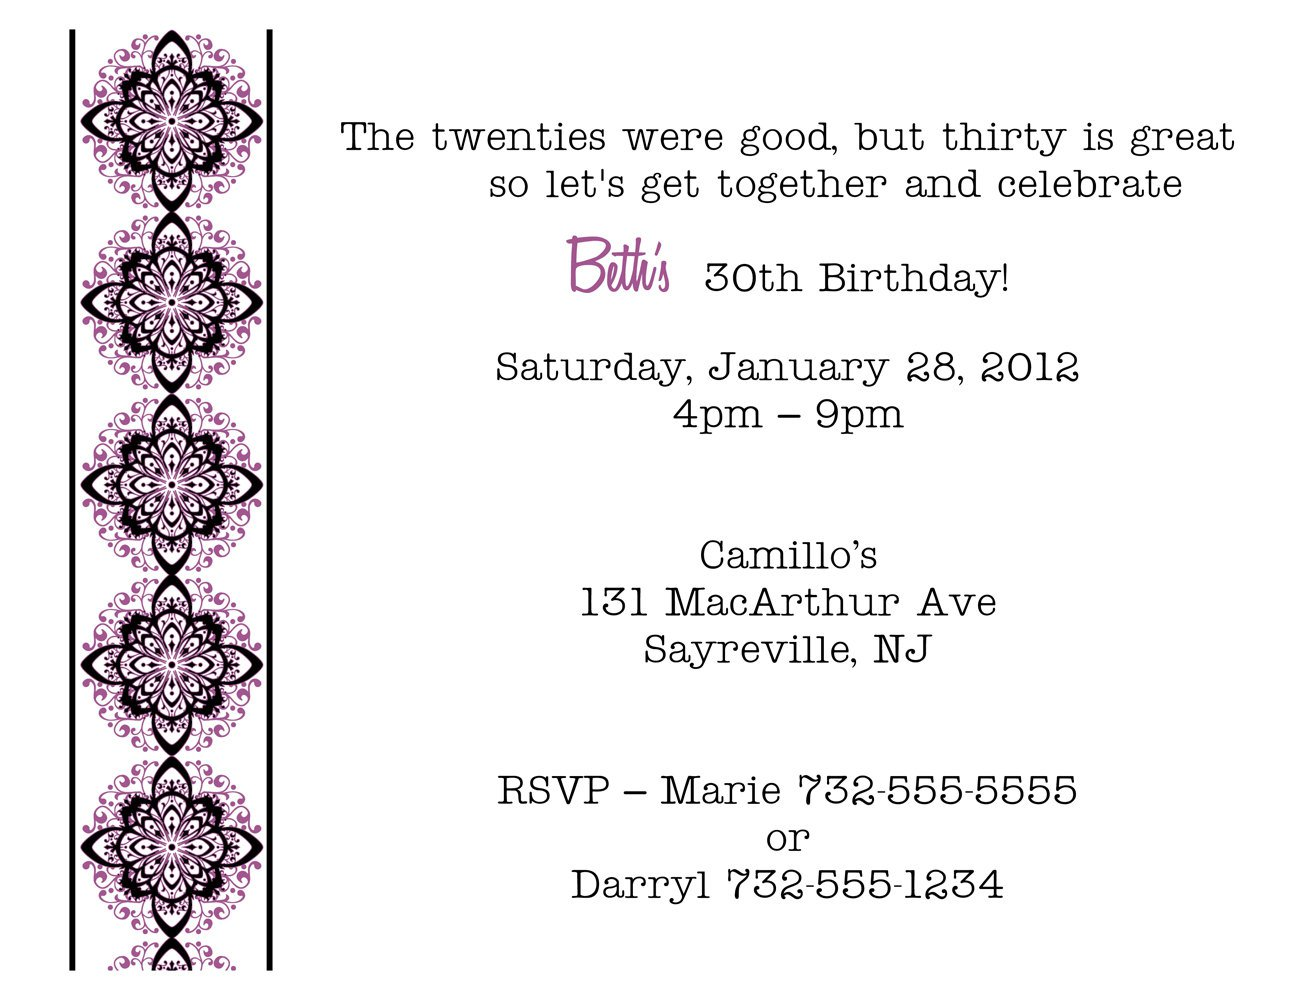 thirtieth birthday invitation wording ; 30th-birthday-invitation-wording-make-your-beautiful-Birthday-invitations-much-more-awesome-15